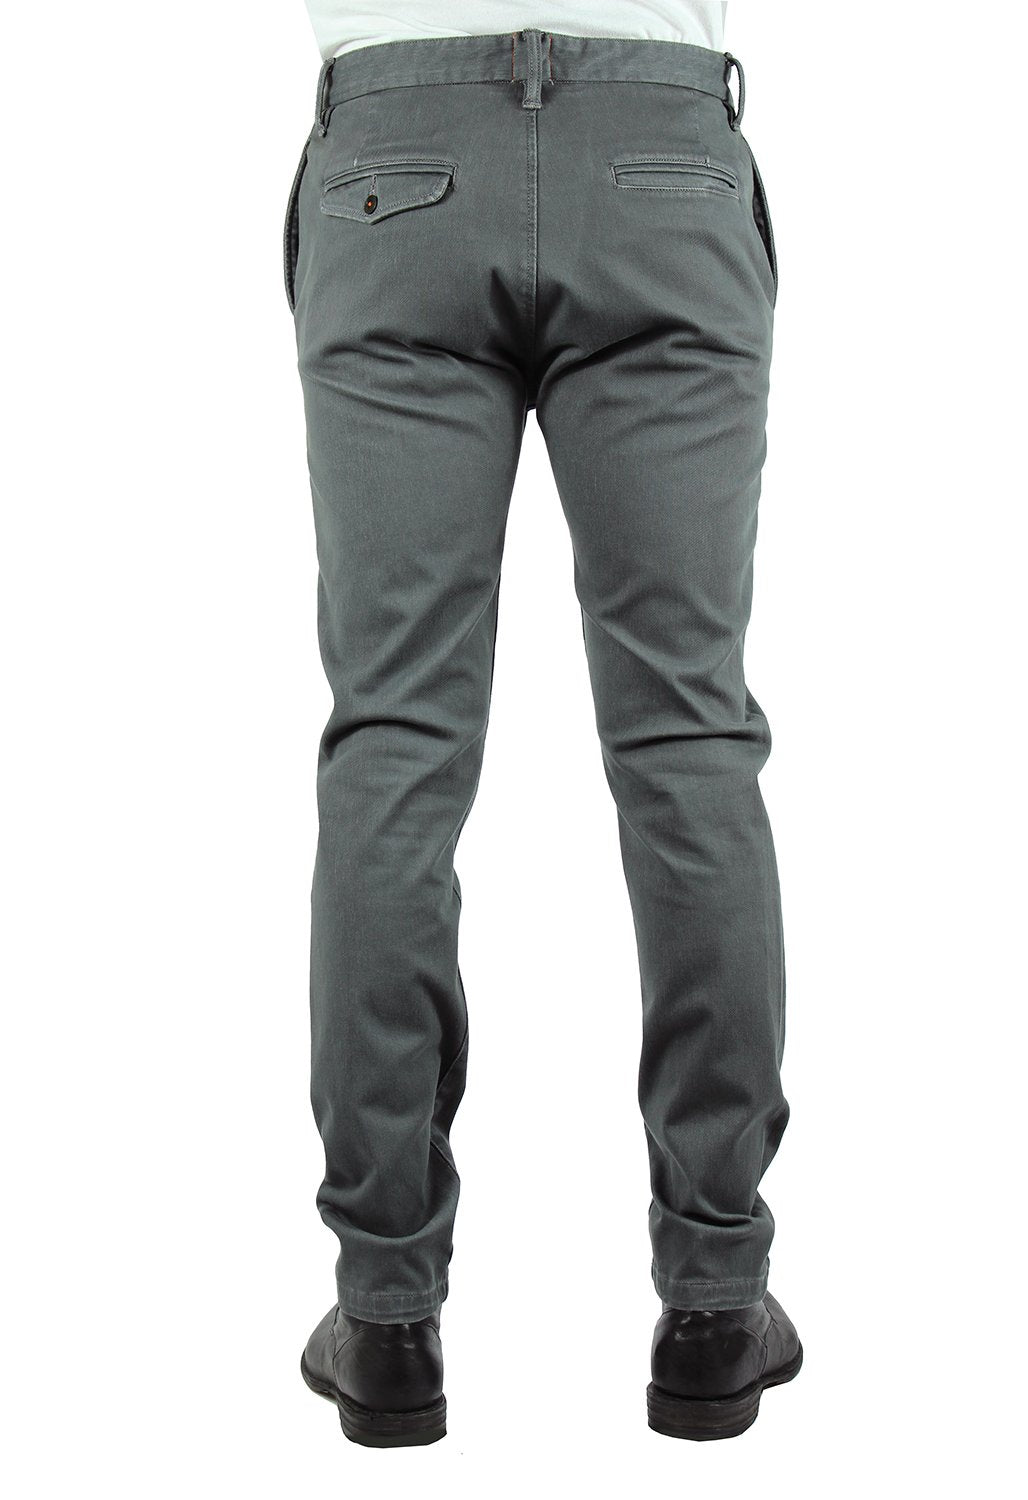 """The Axe"" - Charcoal Slim Chino 12oz 4-Way Stretch French Terry"